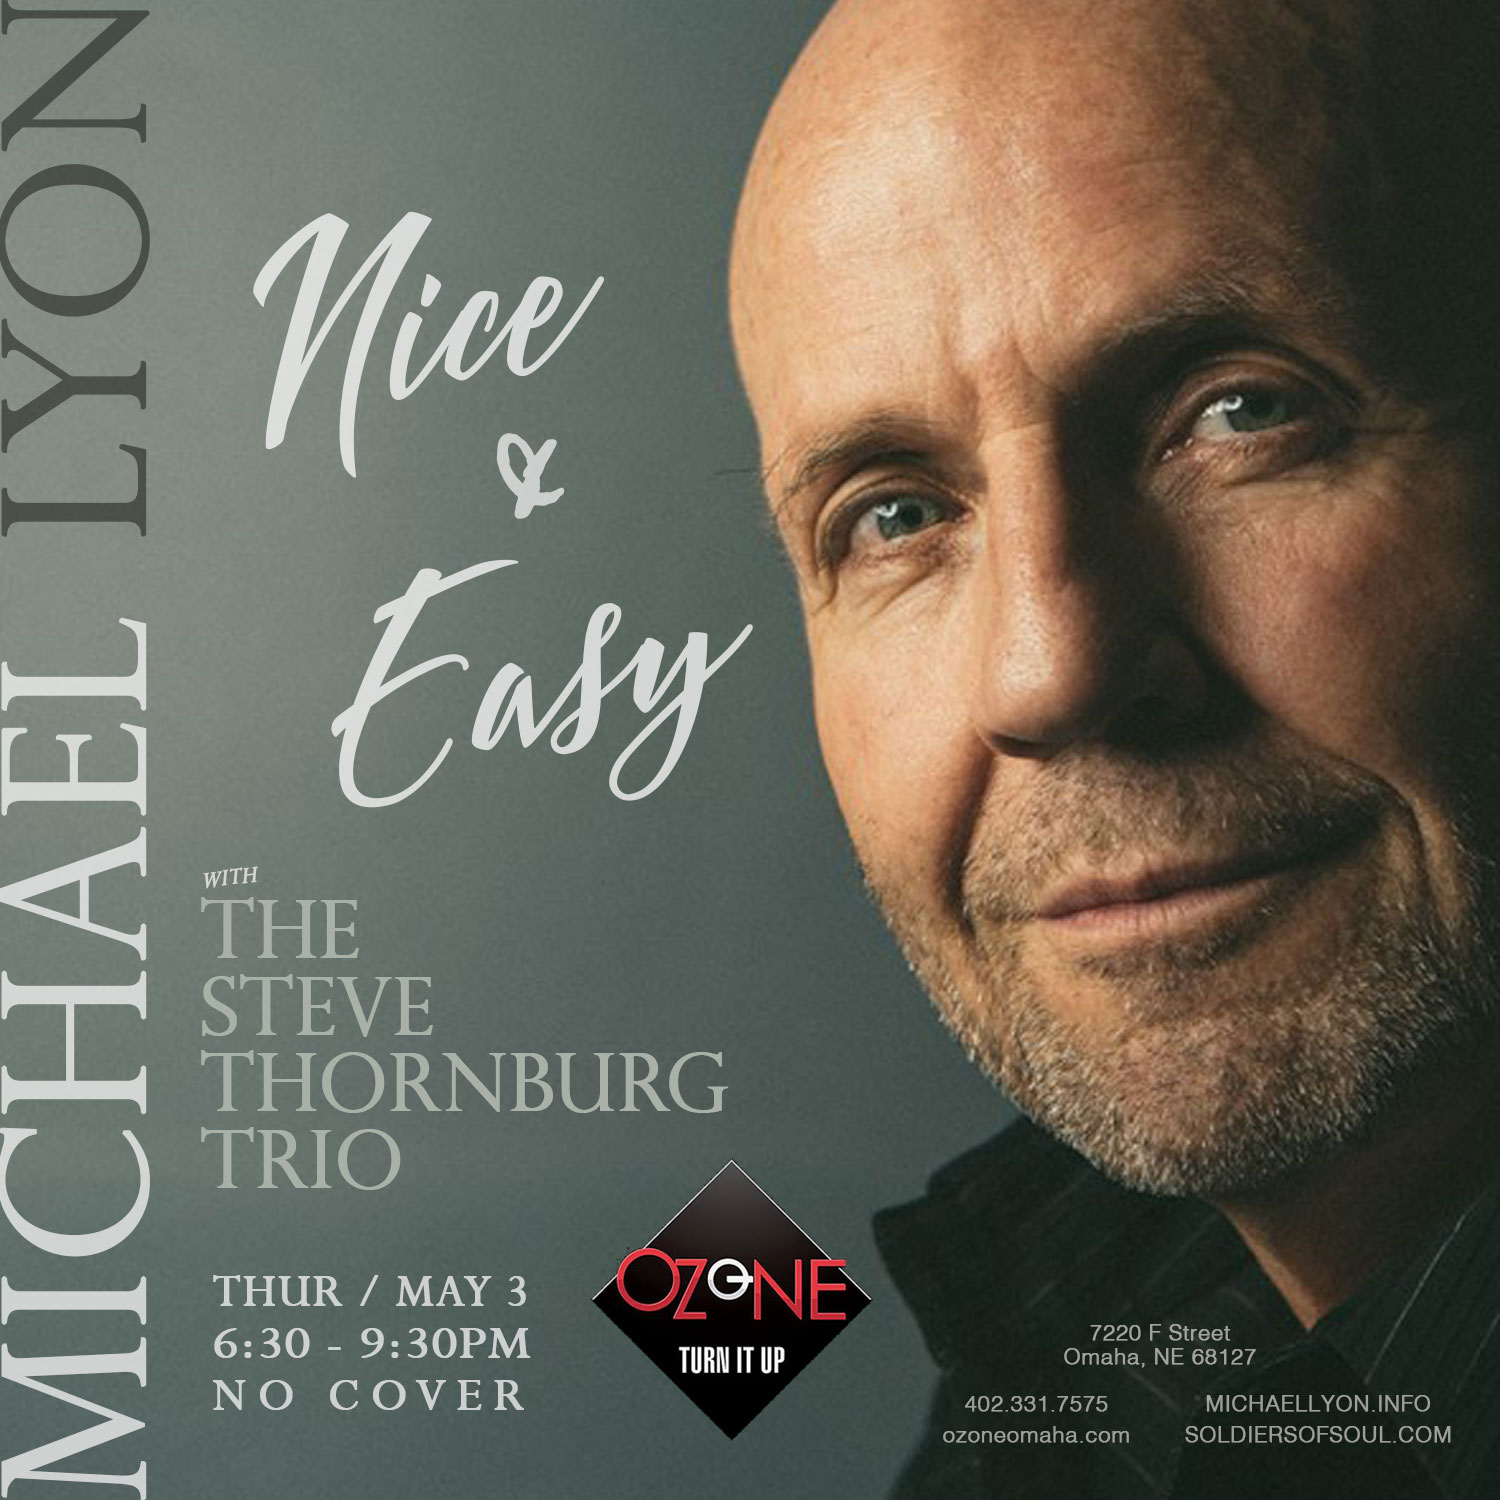 Michael Lyon with The Steve Thornburg Trio at The Ozone